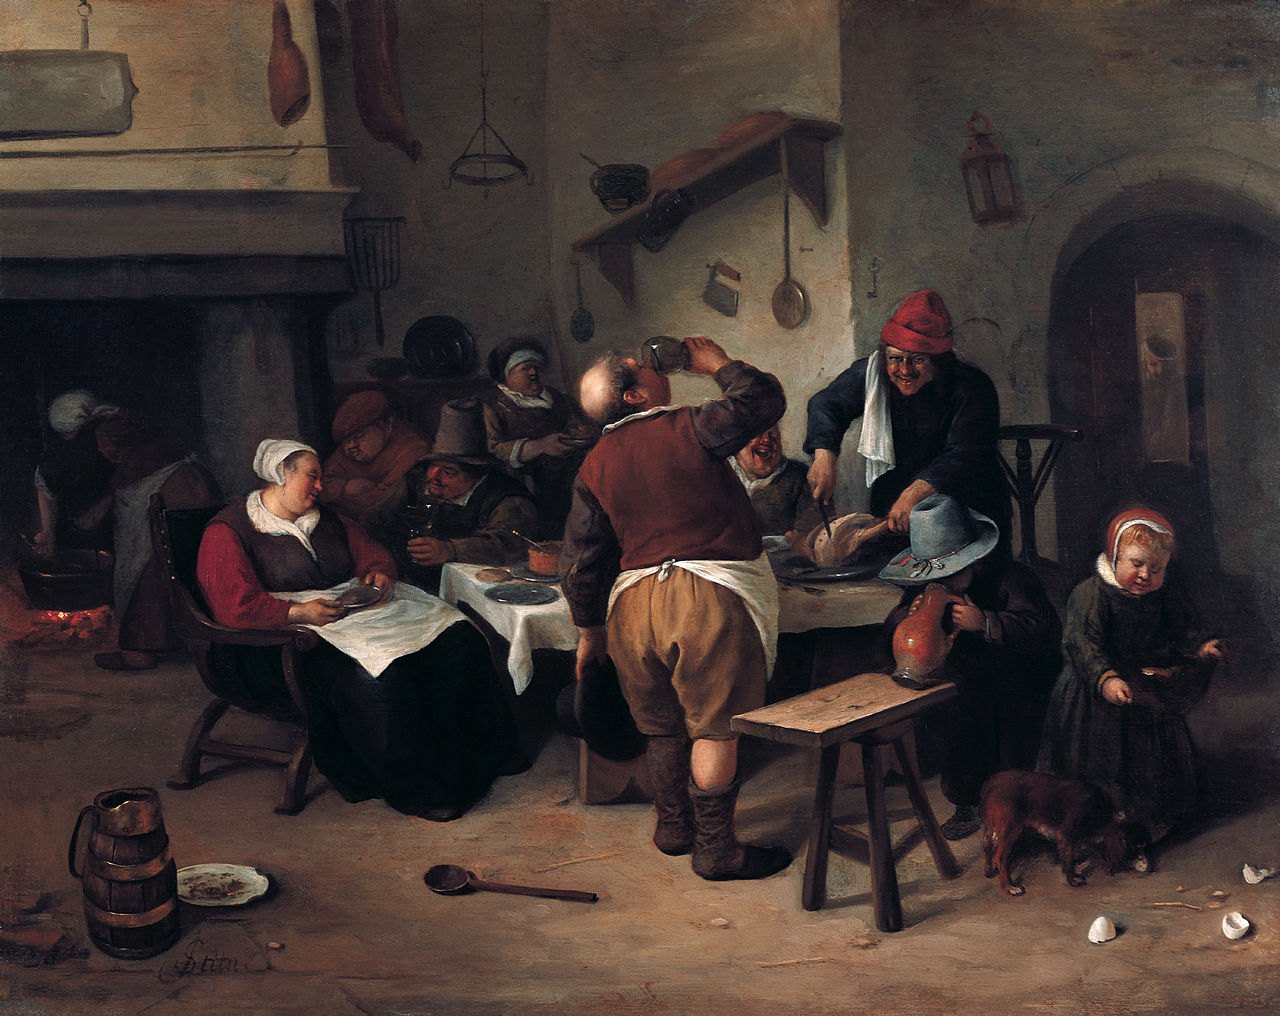 Steen 1650 ca A3 The Fat Kitchen Gartenpalais Liechtenstein in Vienna 45 x 36 cm